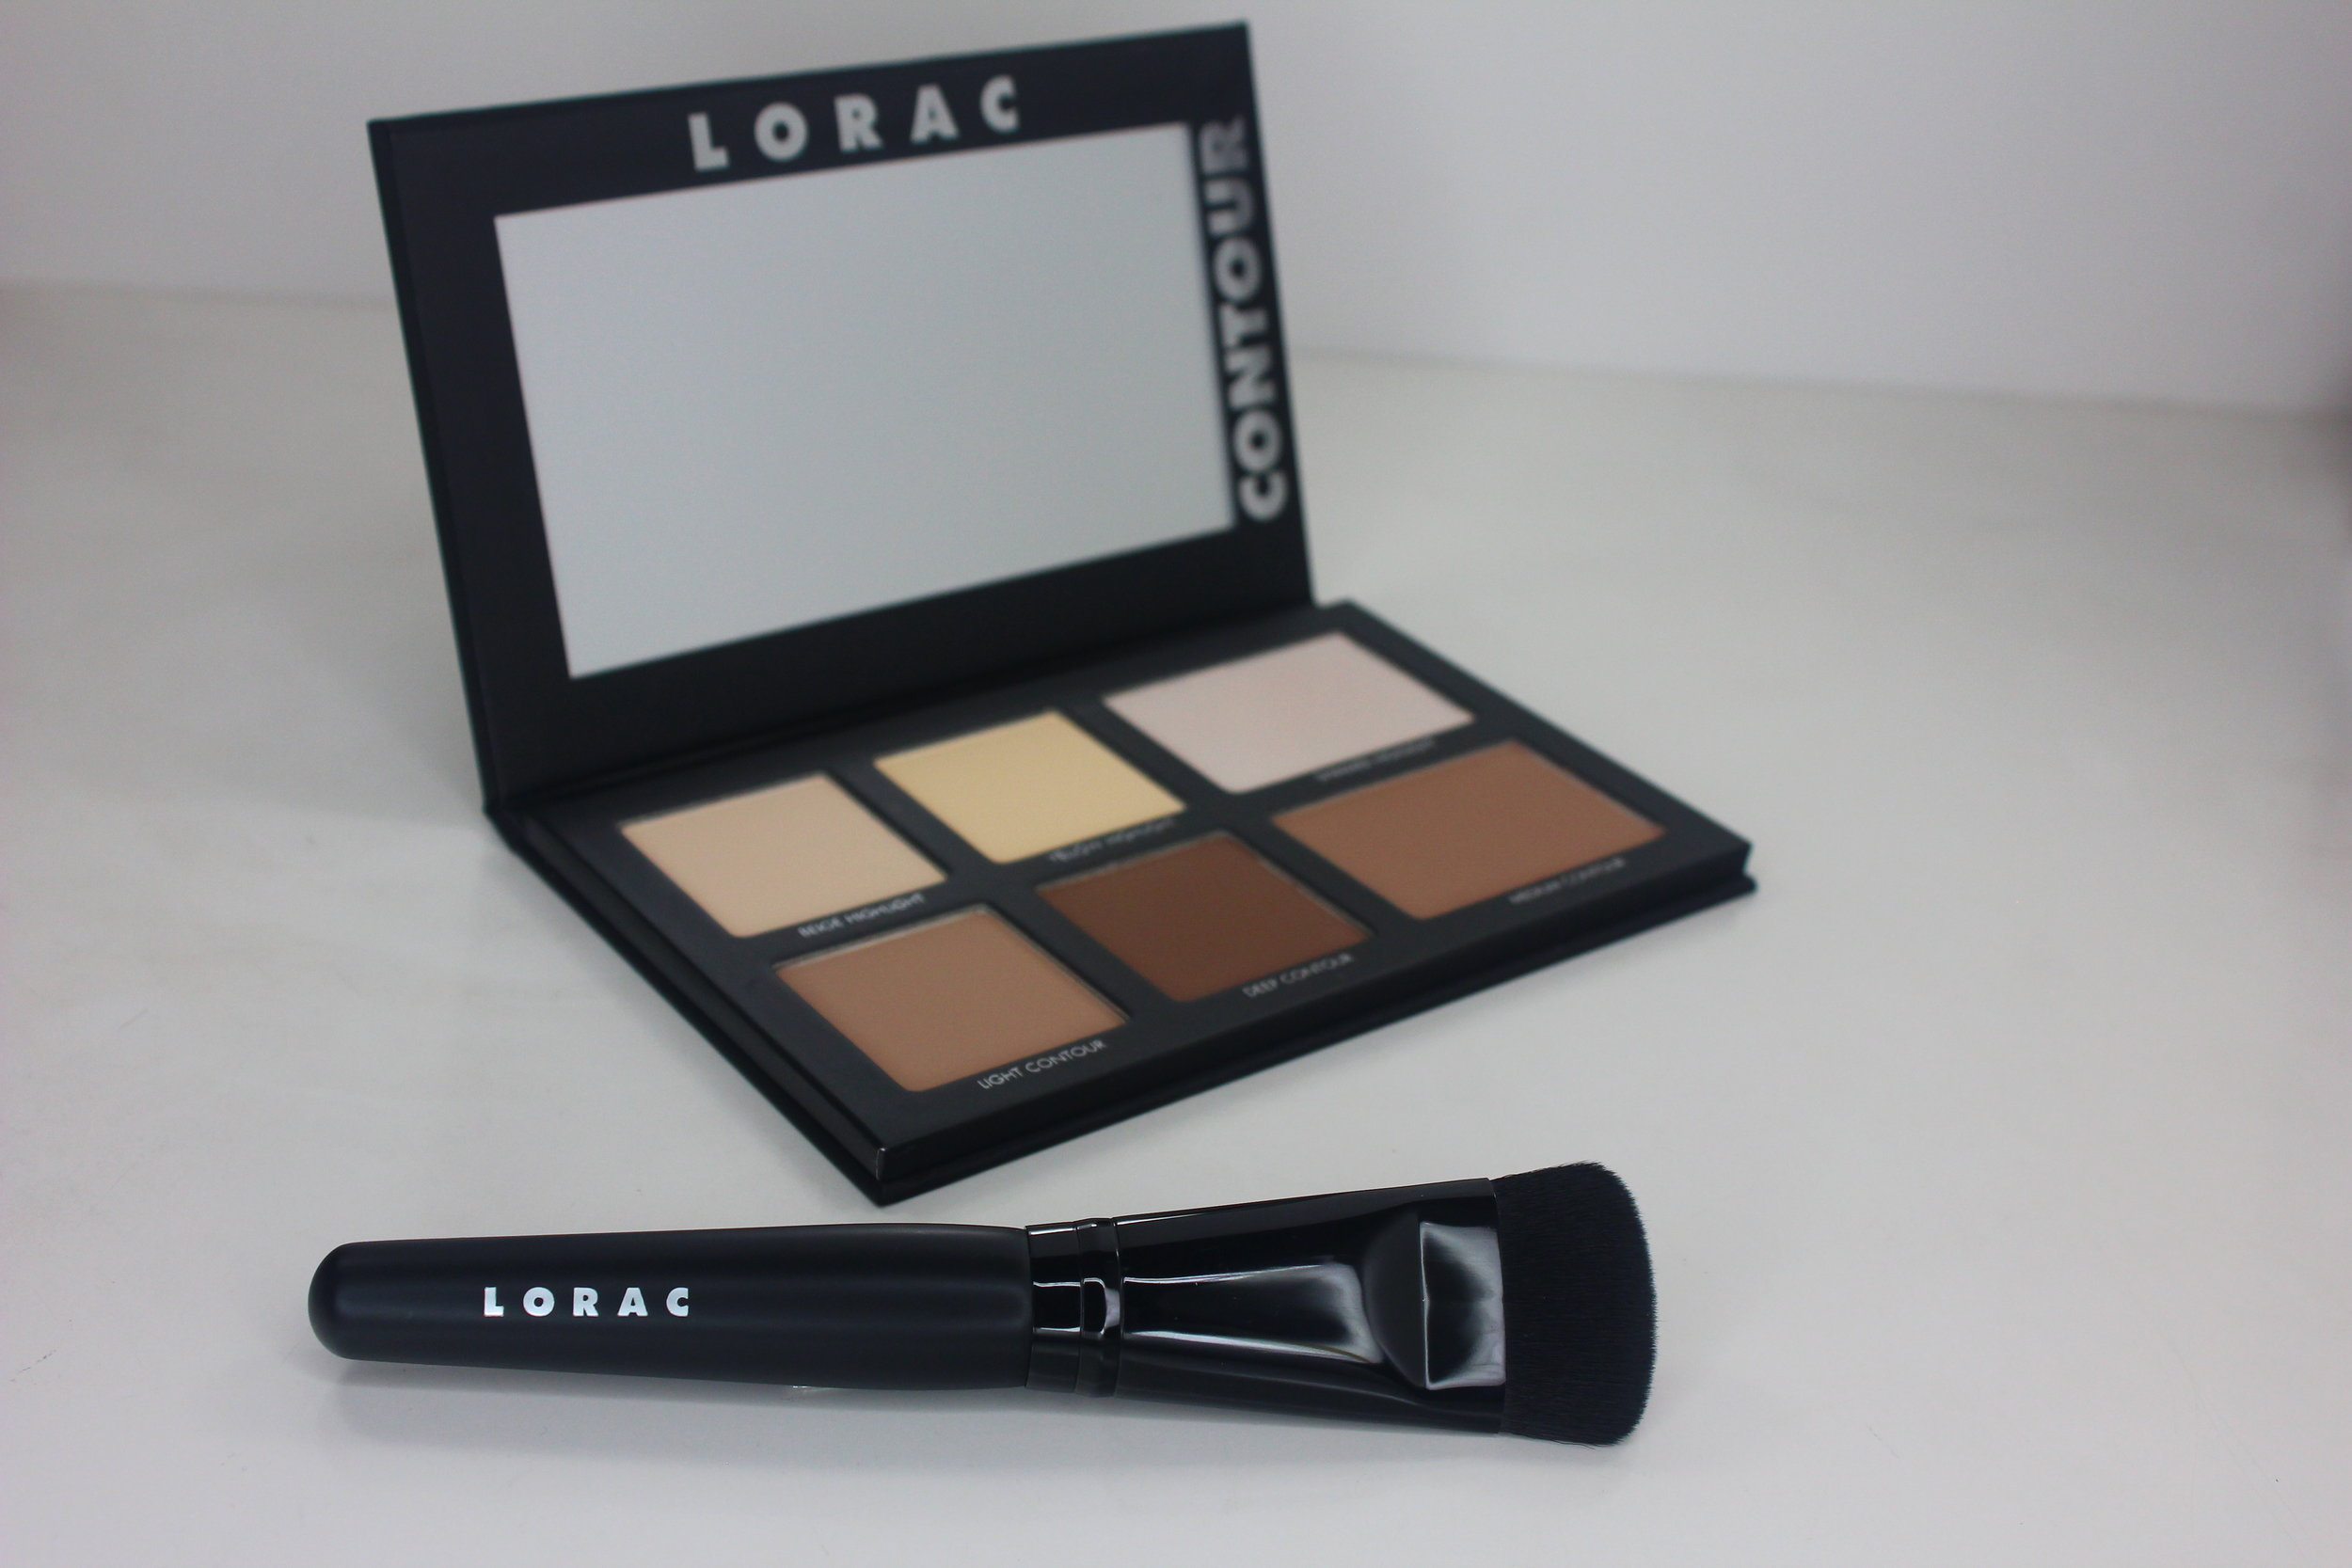 Lorac Pro Contour Palette Review & Swatches 2